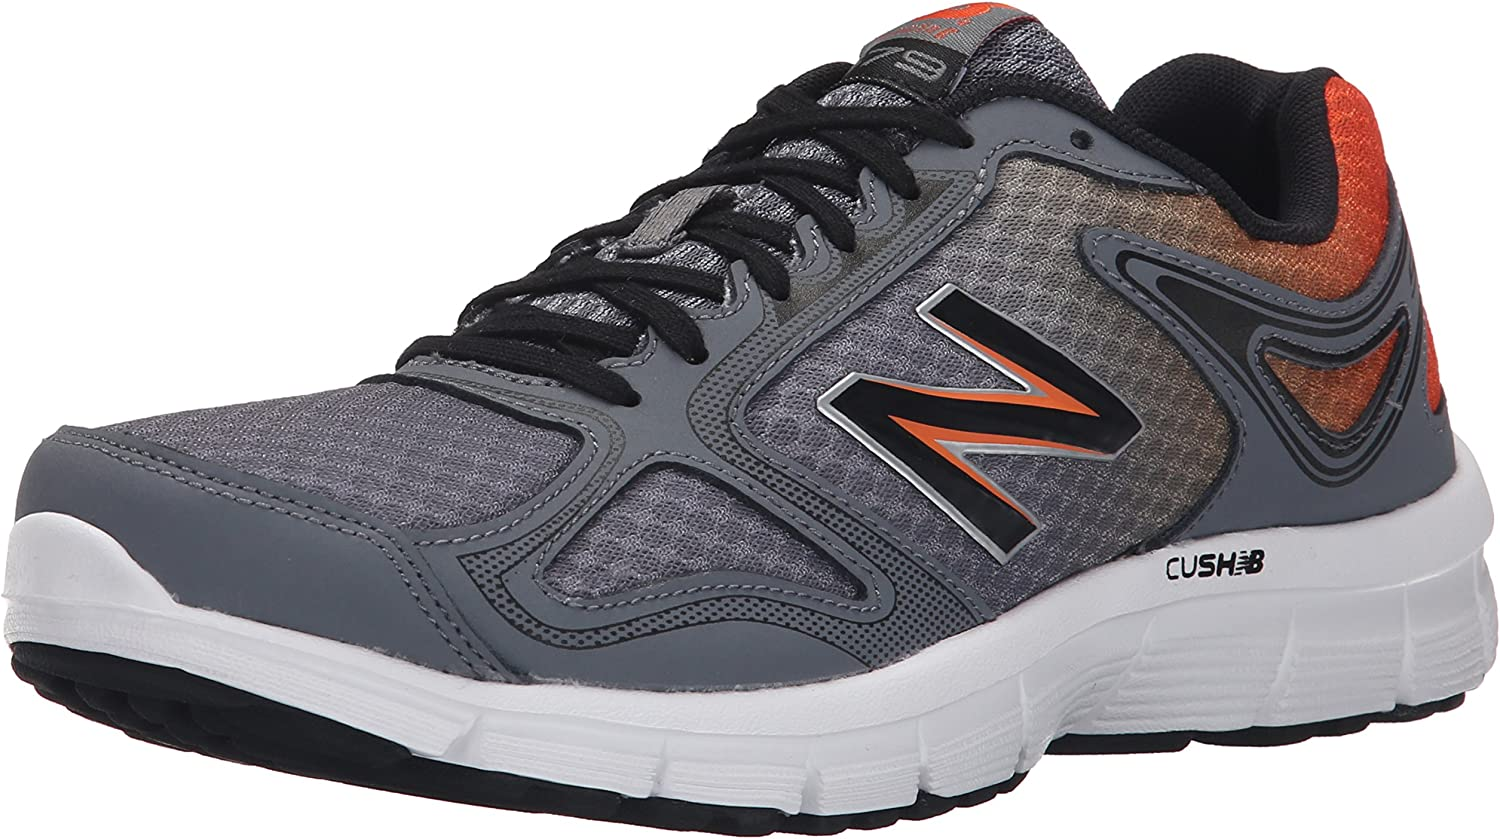 New Balance Men's M579 Running Shoe